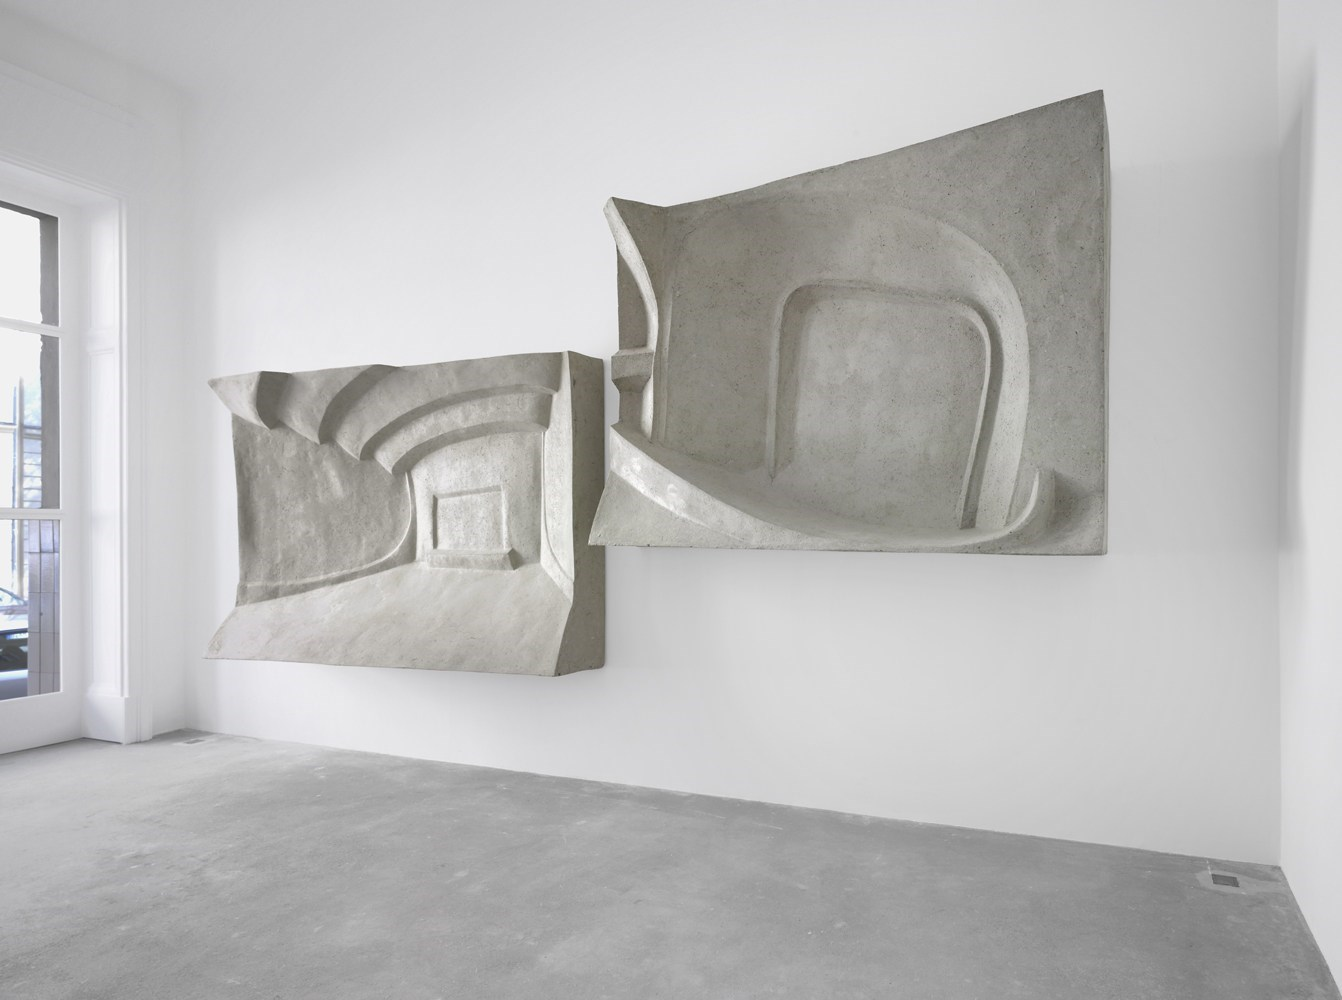 Odeon; Hudson, ca. 150cm x 225cm x 40cm each, paper mâché, resin and aluminum, 2010, 2011<br />Installation view Sassa Trülzsch, Berlin